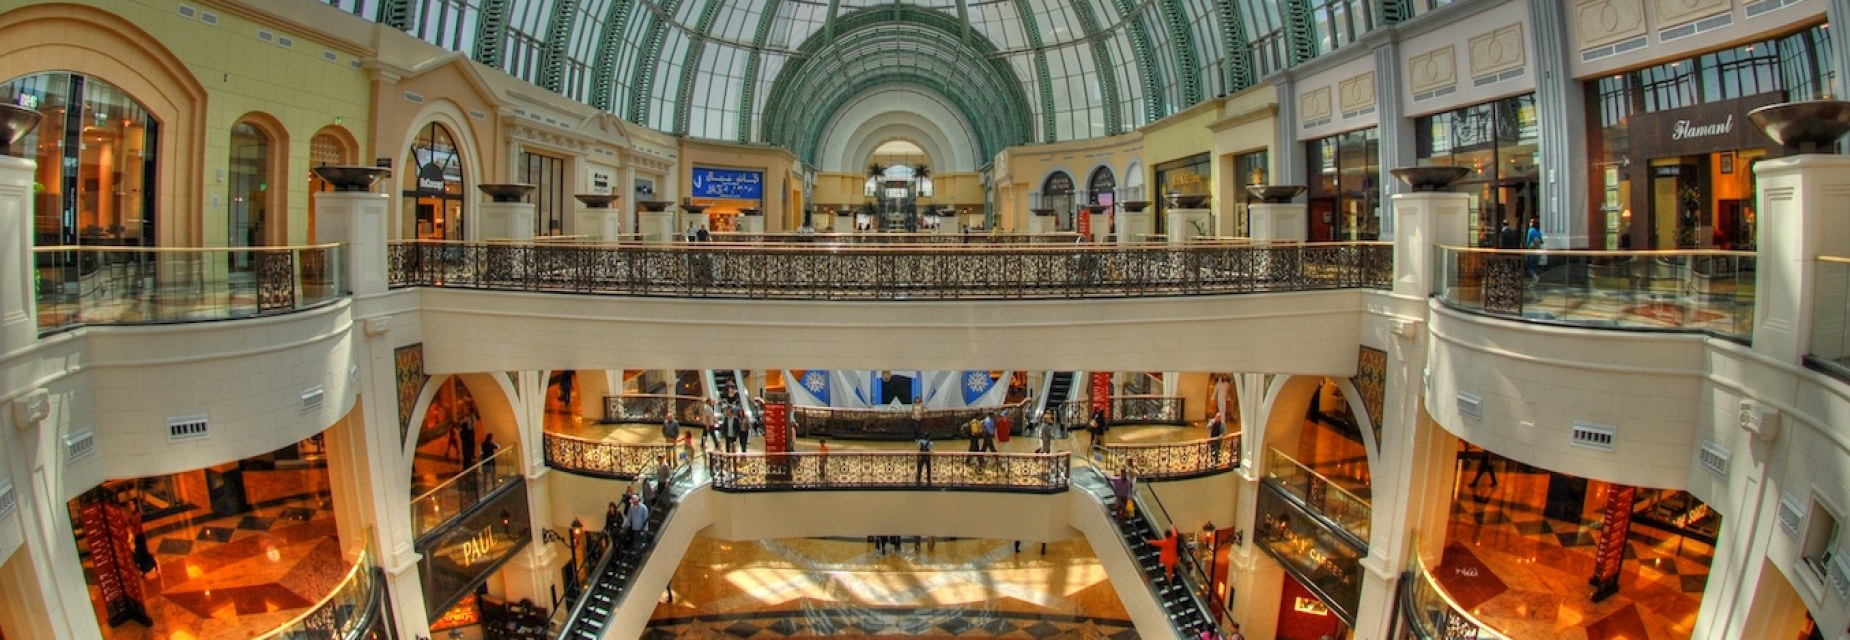 Mall of the Emirates image 001